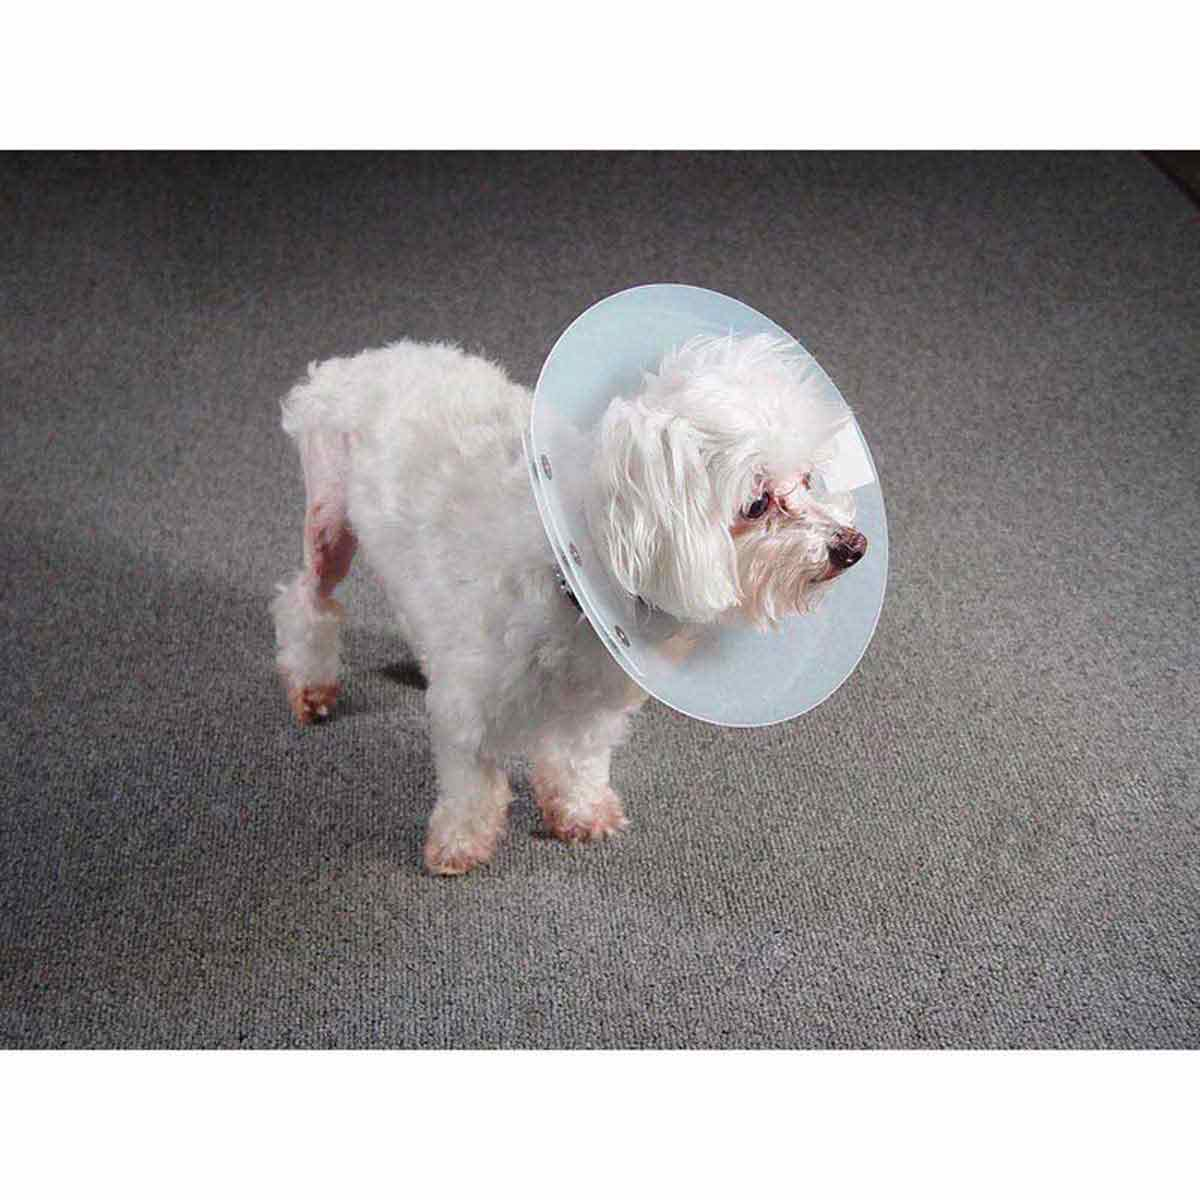 Dog wearing KVP Saf-T-Shield Elizabethan Collar - 6.25-8.5 inch Opening